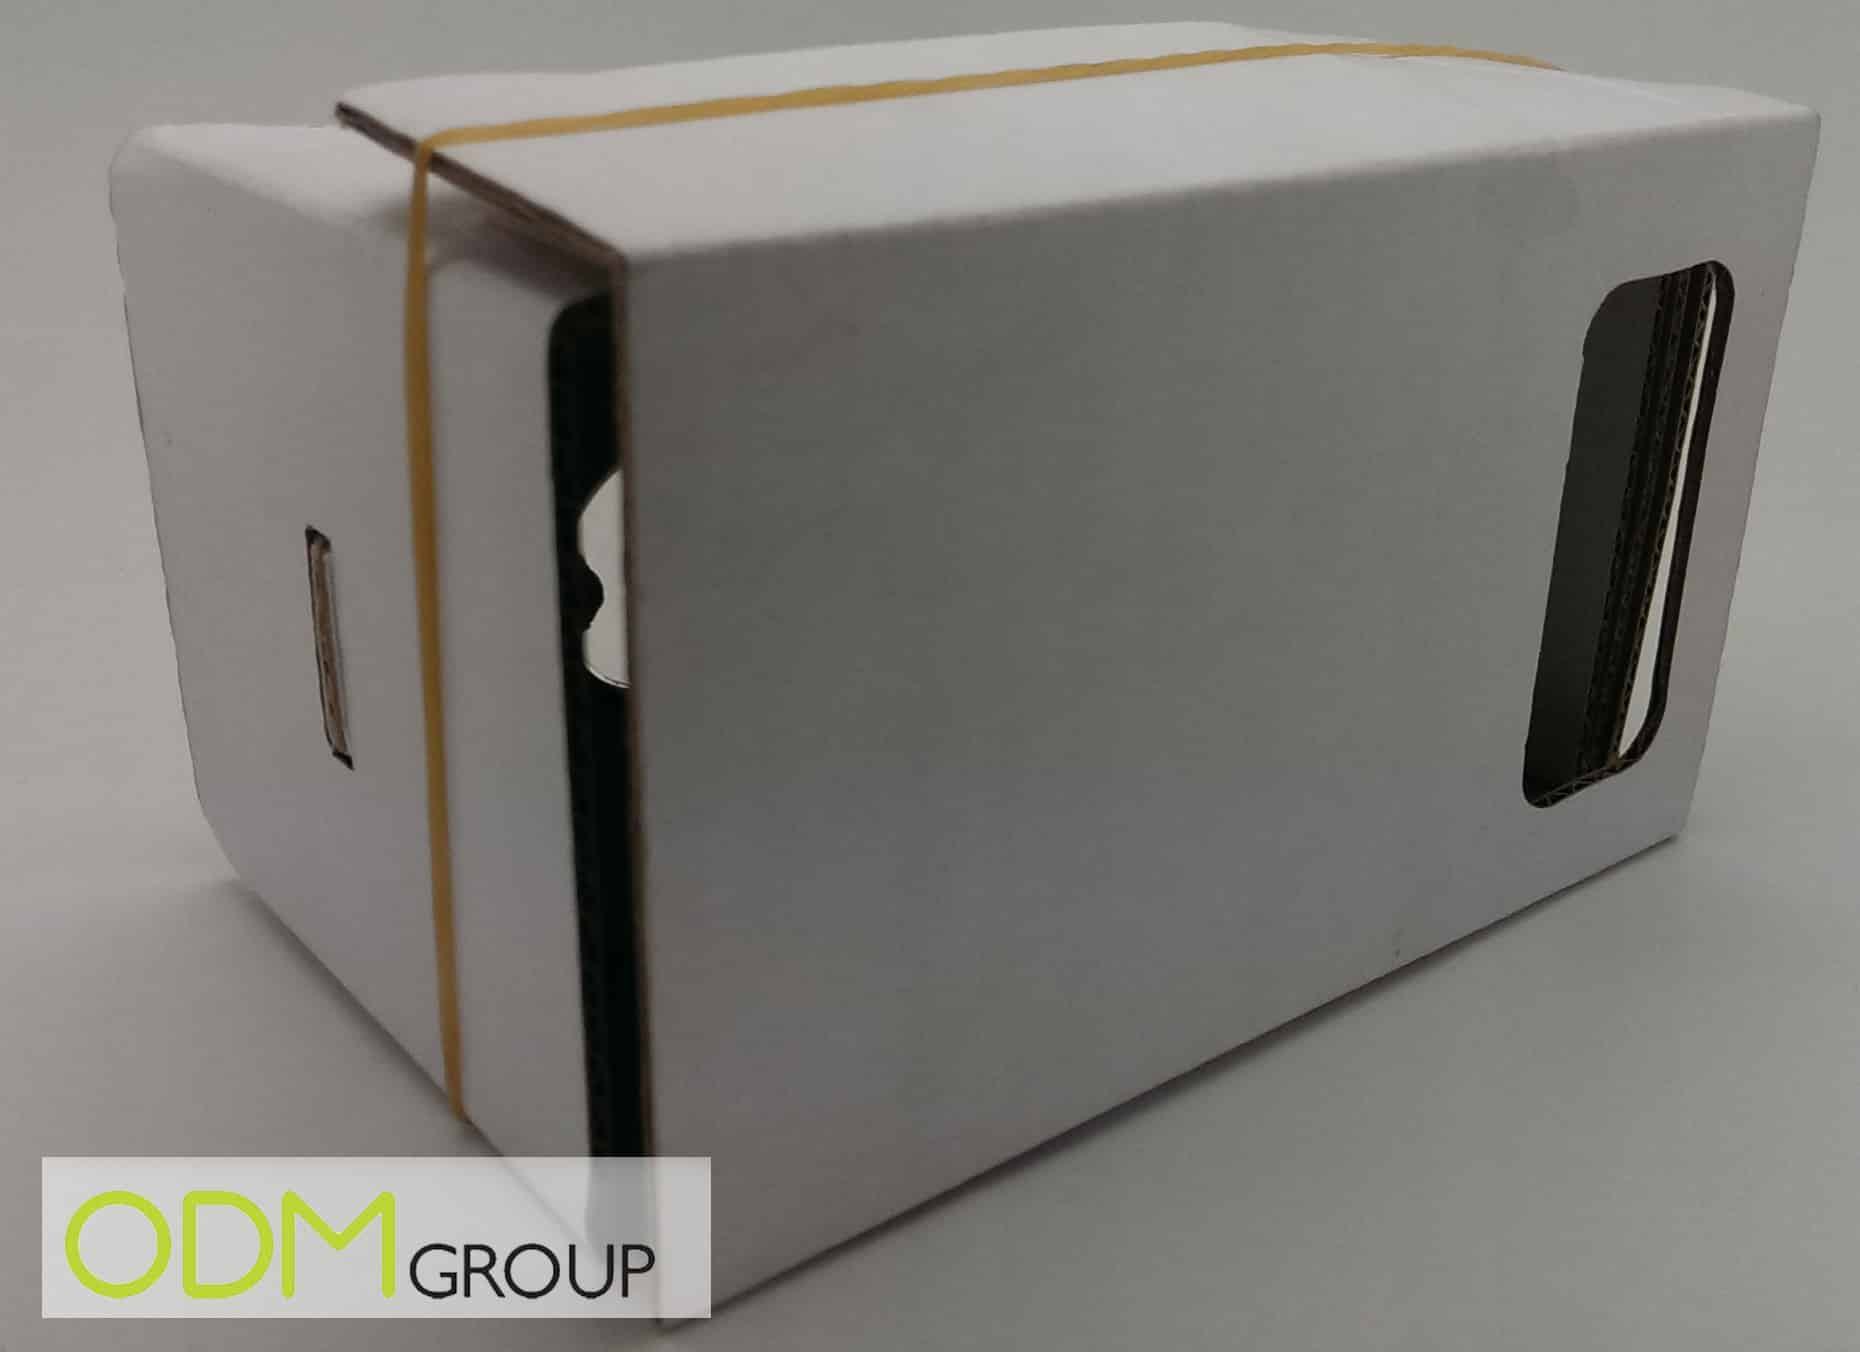 Customisable Google Cardboard has huge branding potential